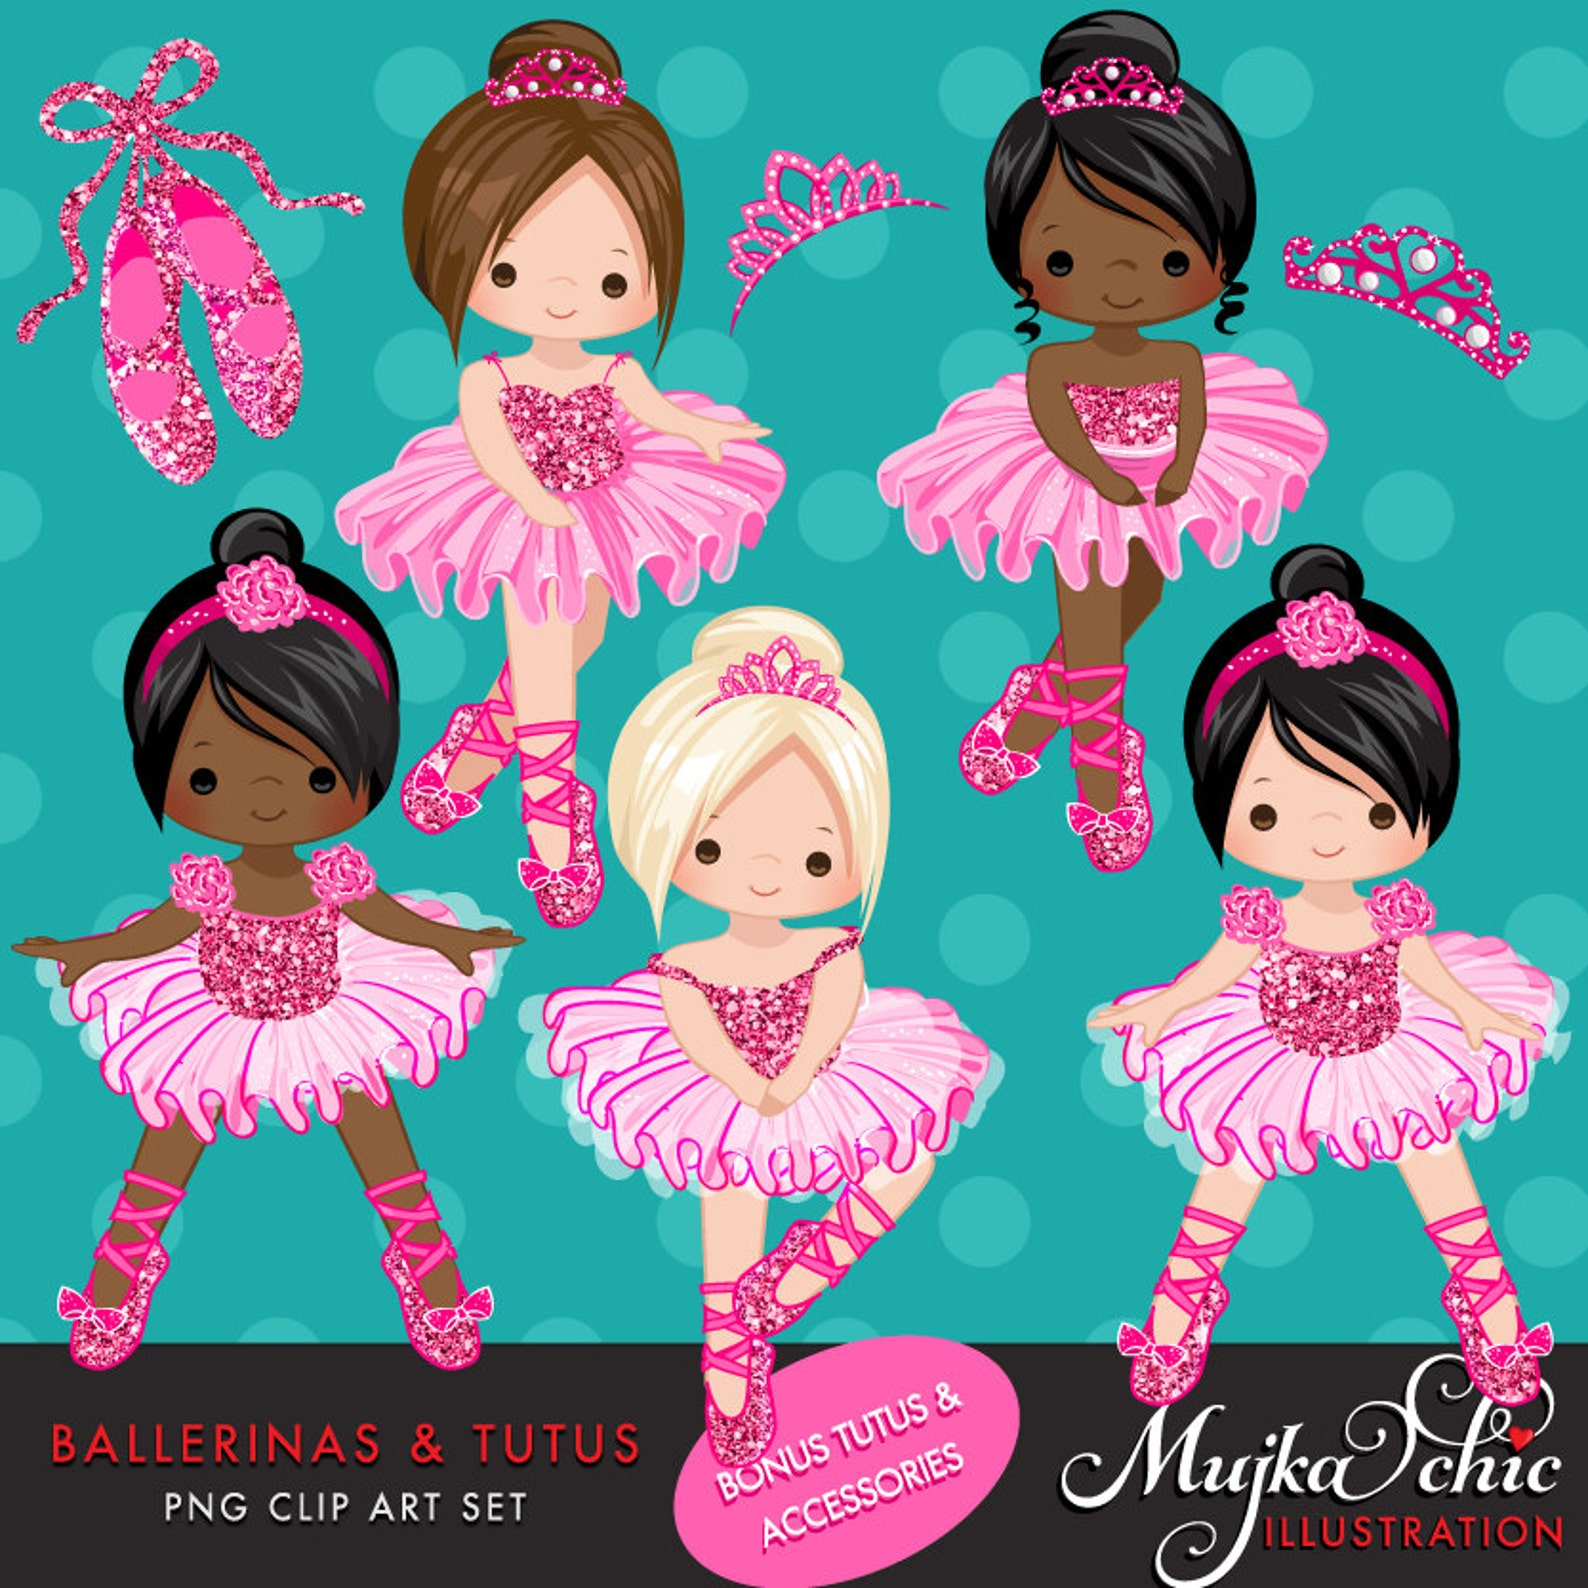 ballerinas and tutus hot pink glitter clipart, ballerina, hot pink tutu, hot pink tiara, ballet shoes, ballet dress, african ame